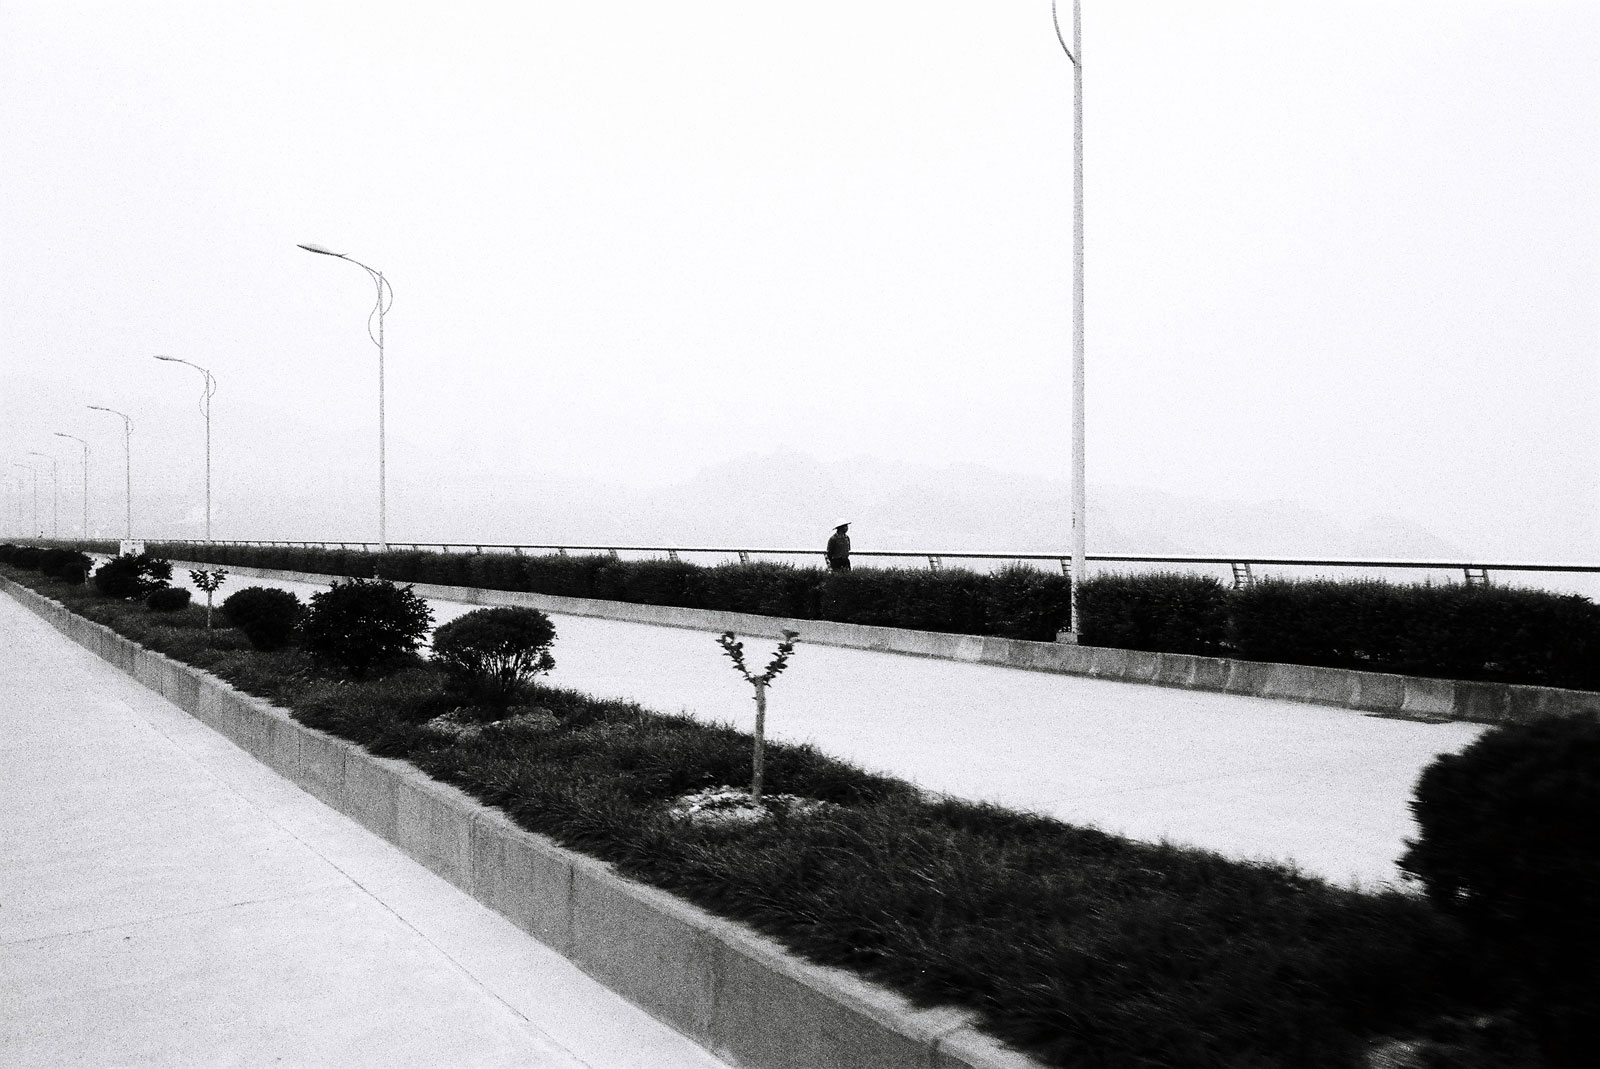 three gorges dam black & white